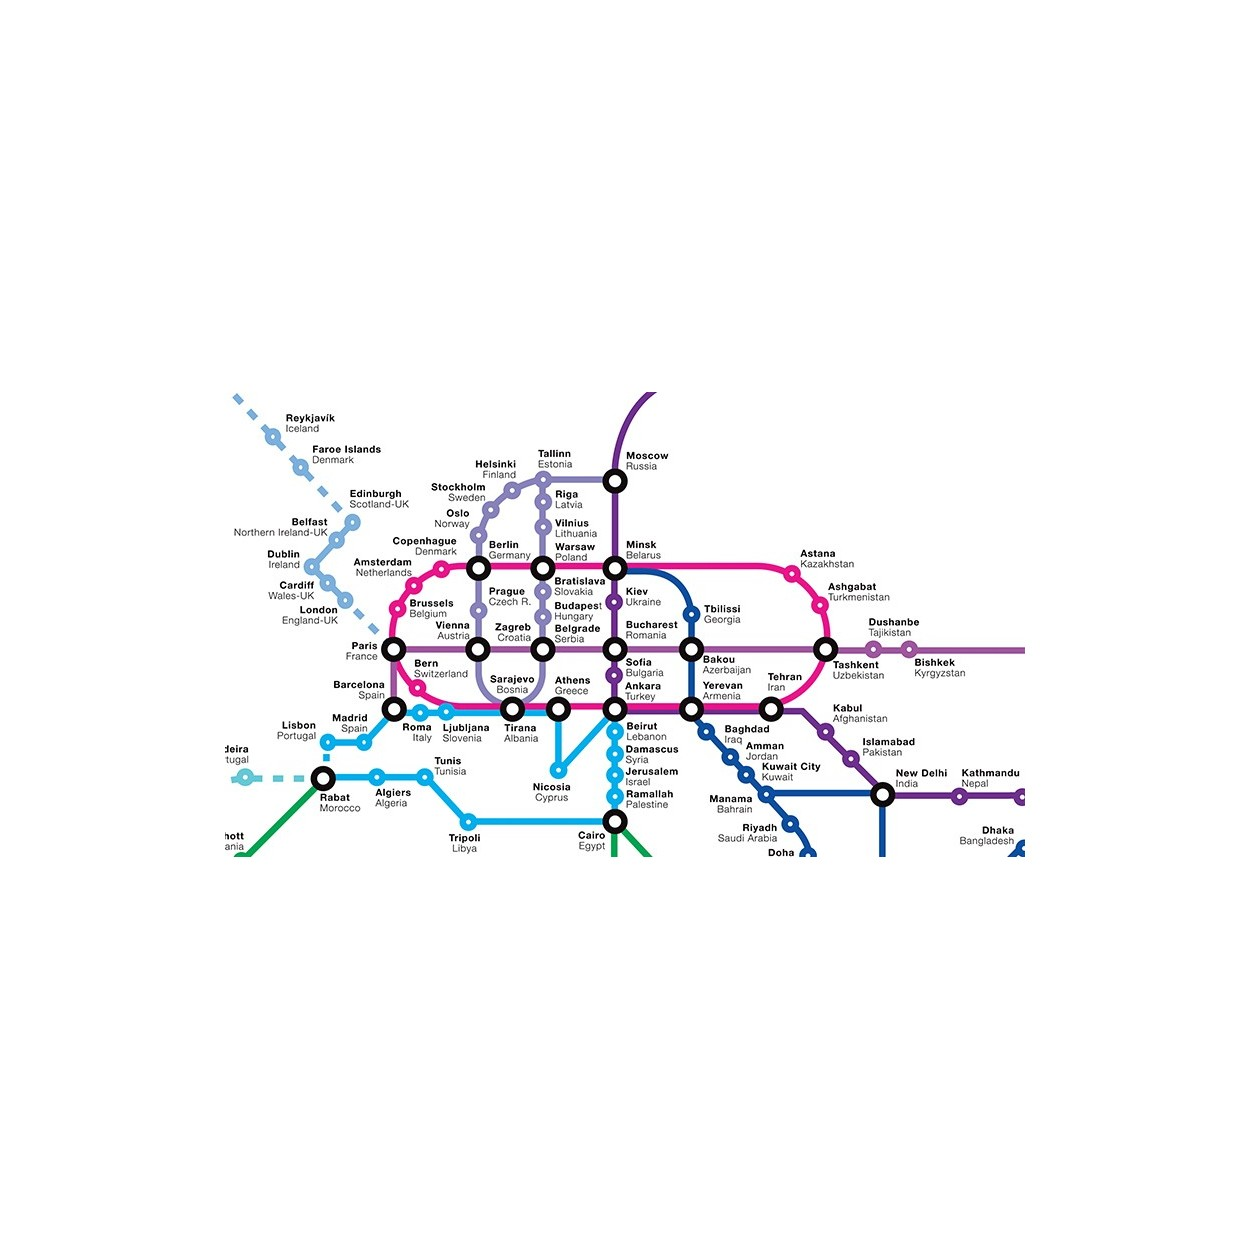 Poster print and design of international subway world map art poster 70 x 100 cm world metro map olivier bourdereau gumiabroncs Images